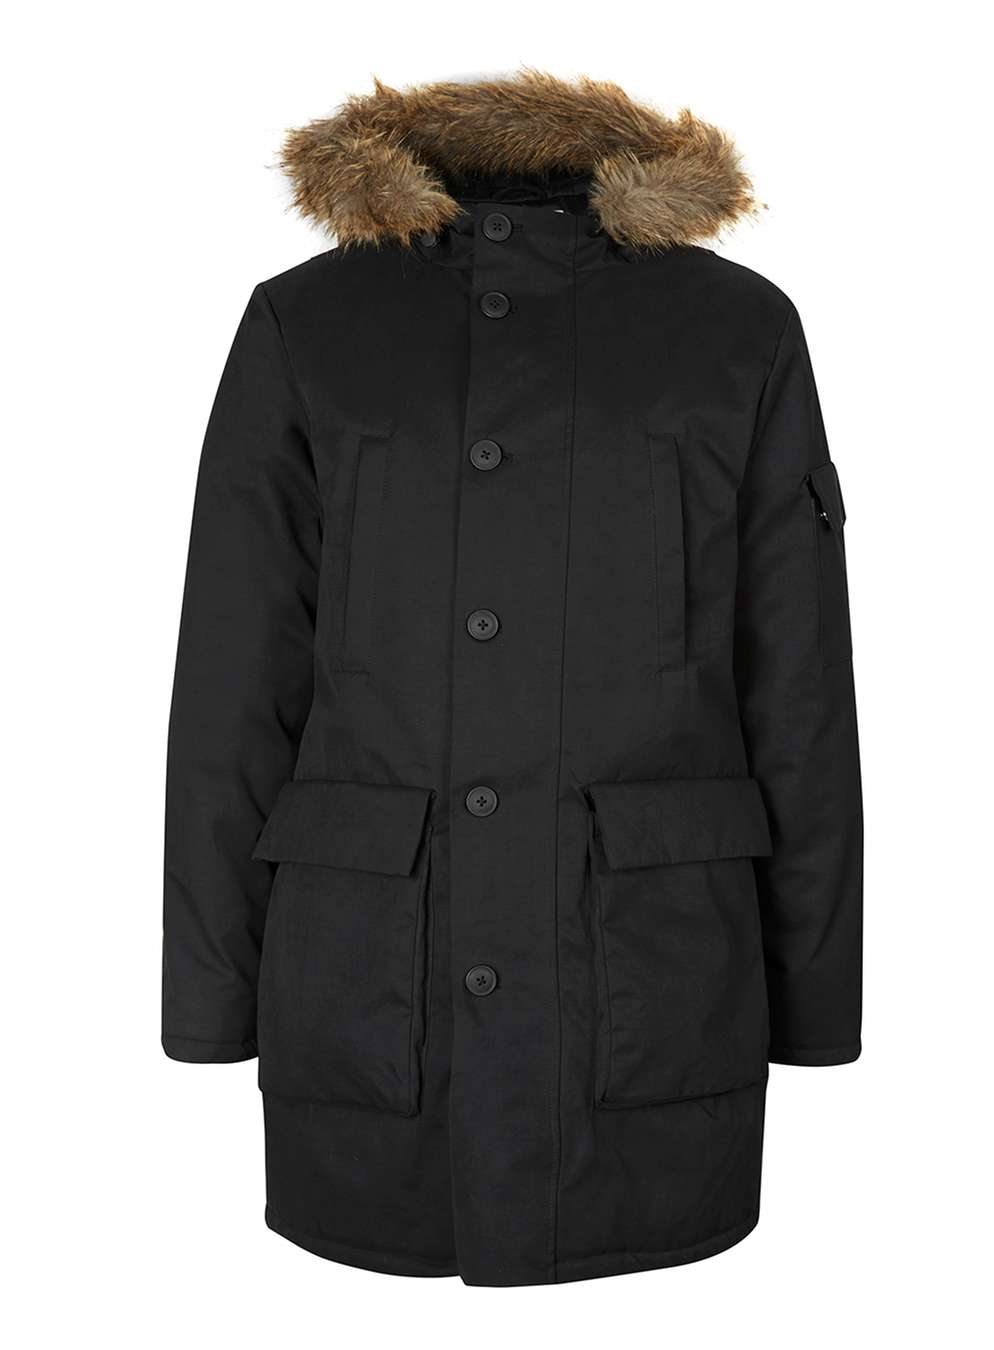 TOPMAN LTD Black Premium Duck Down Parka, £125